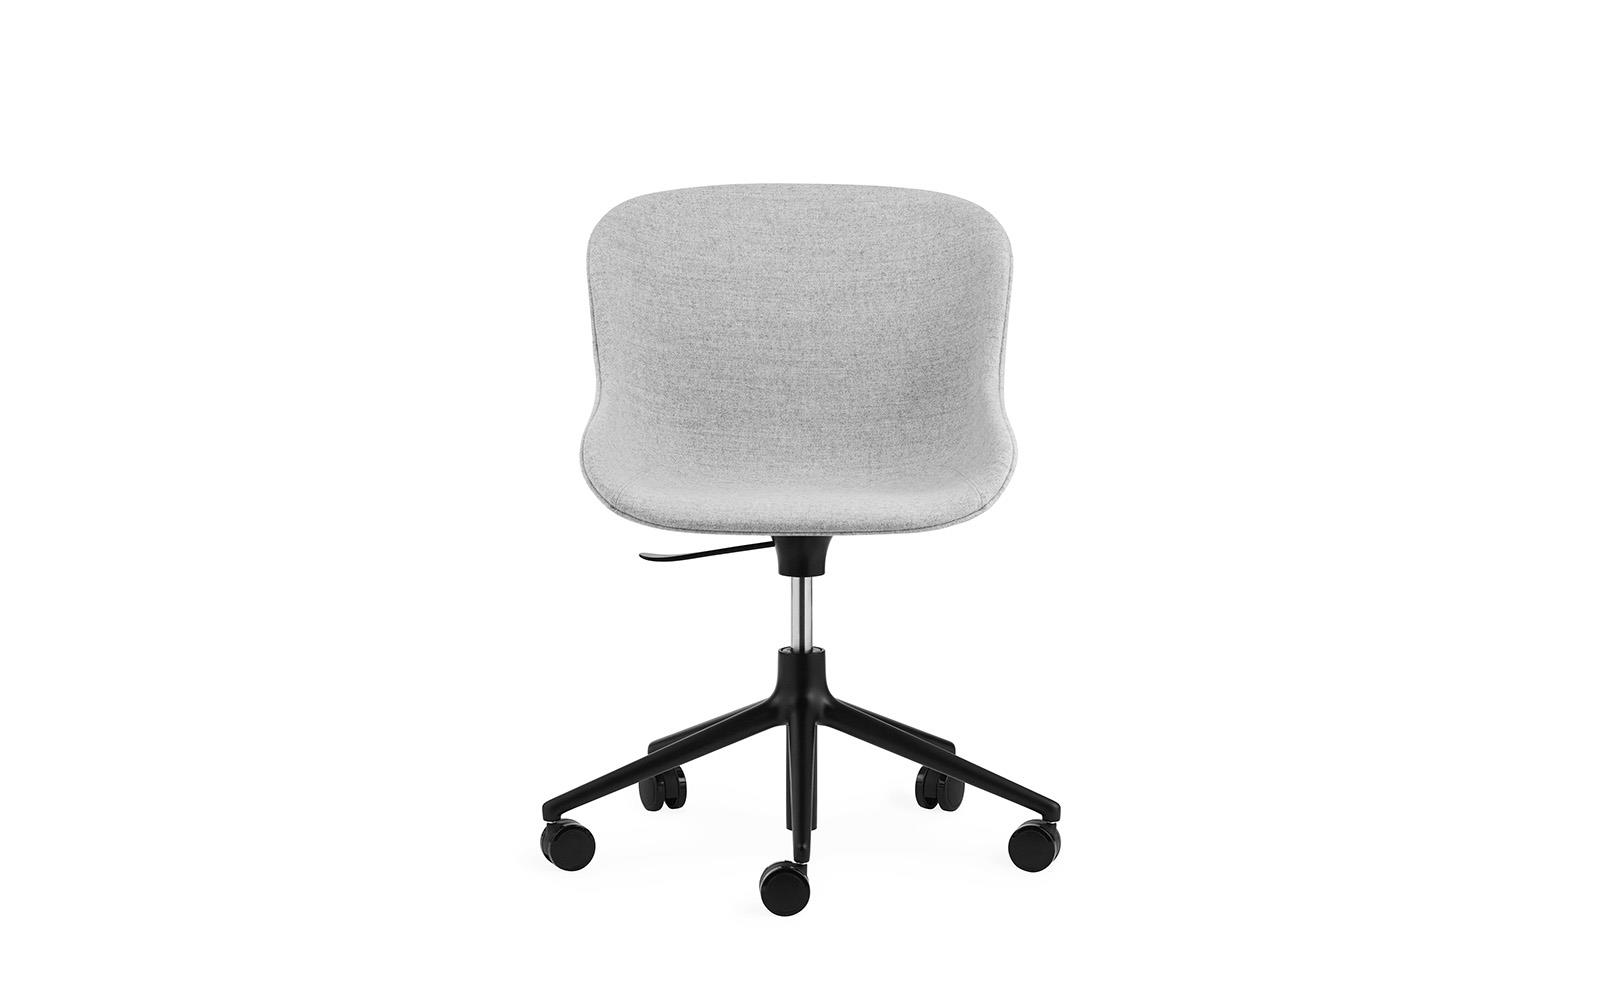 Hyg Chair Swivel 5W Gaslift Full Upholstery Black Alu2